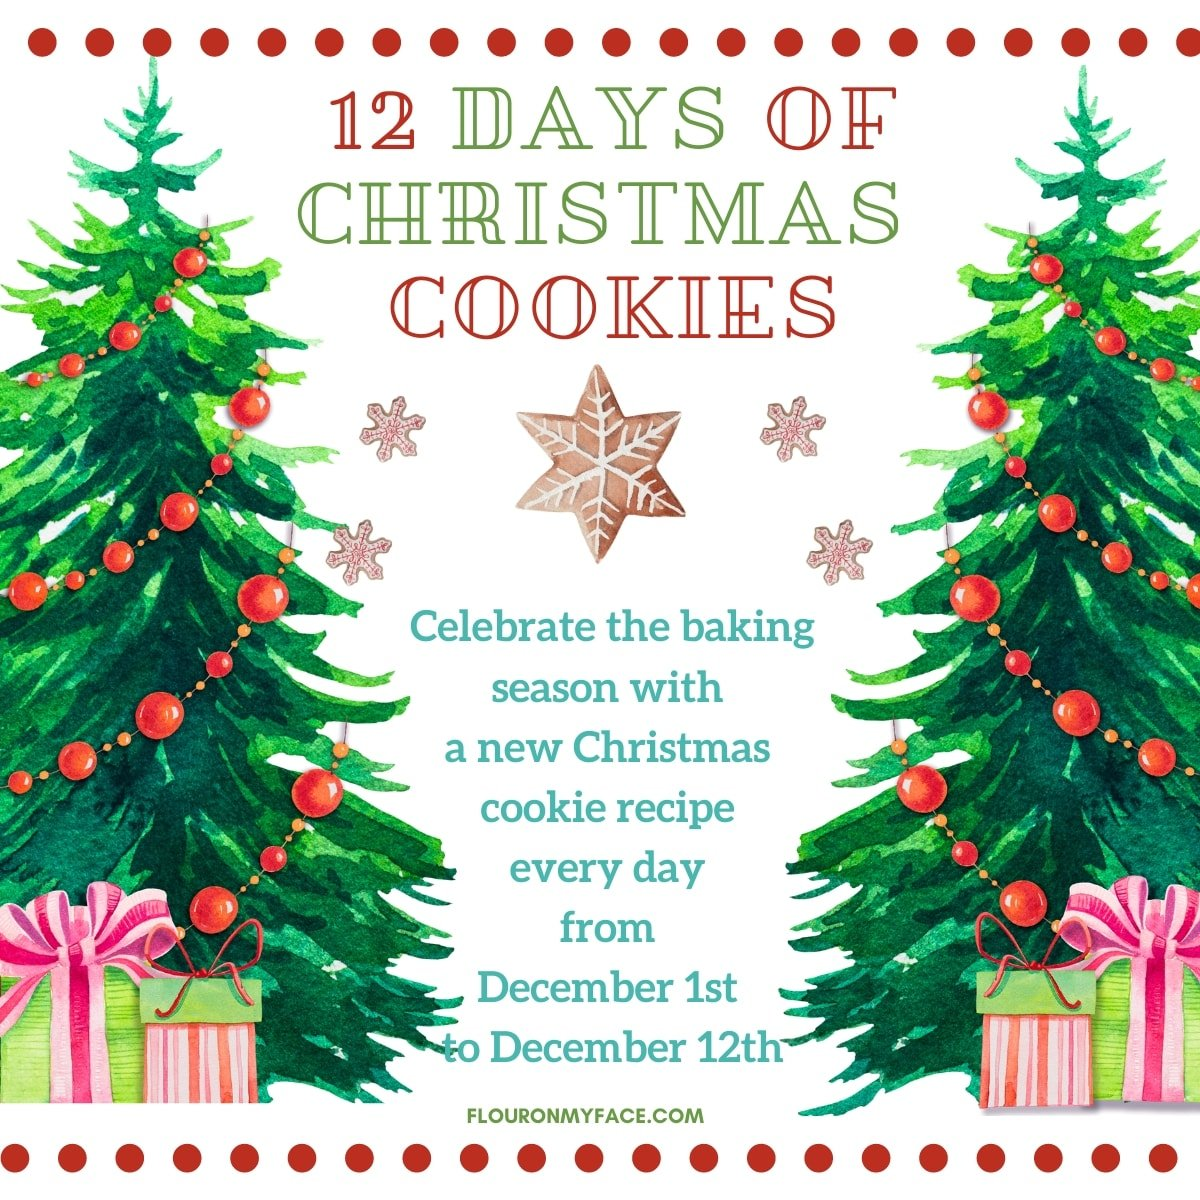 12 Days of Christmas Cookies celebration. Celebrate